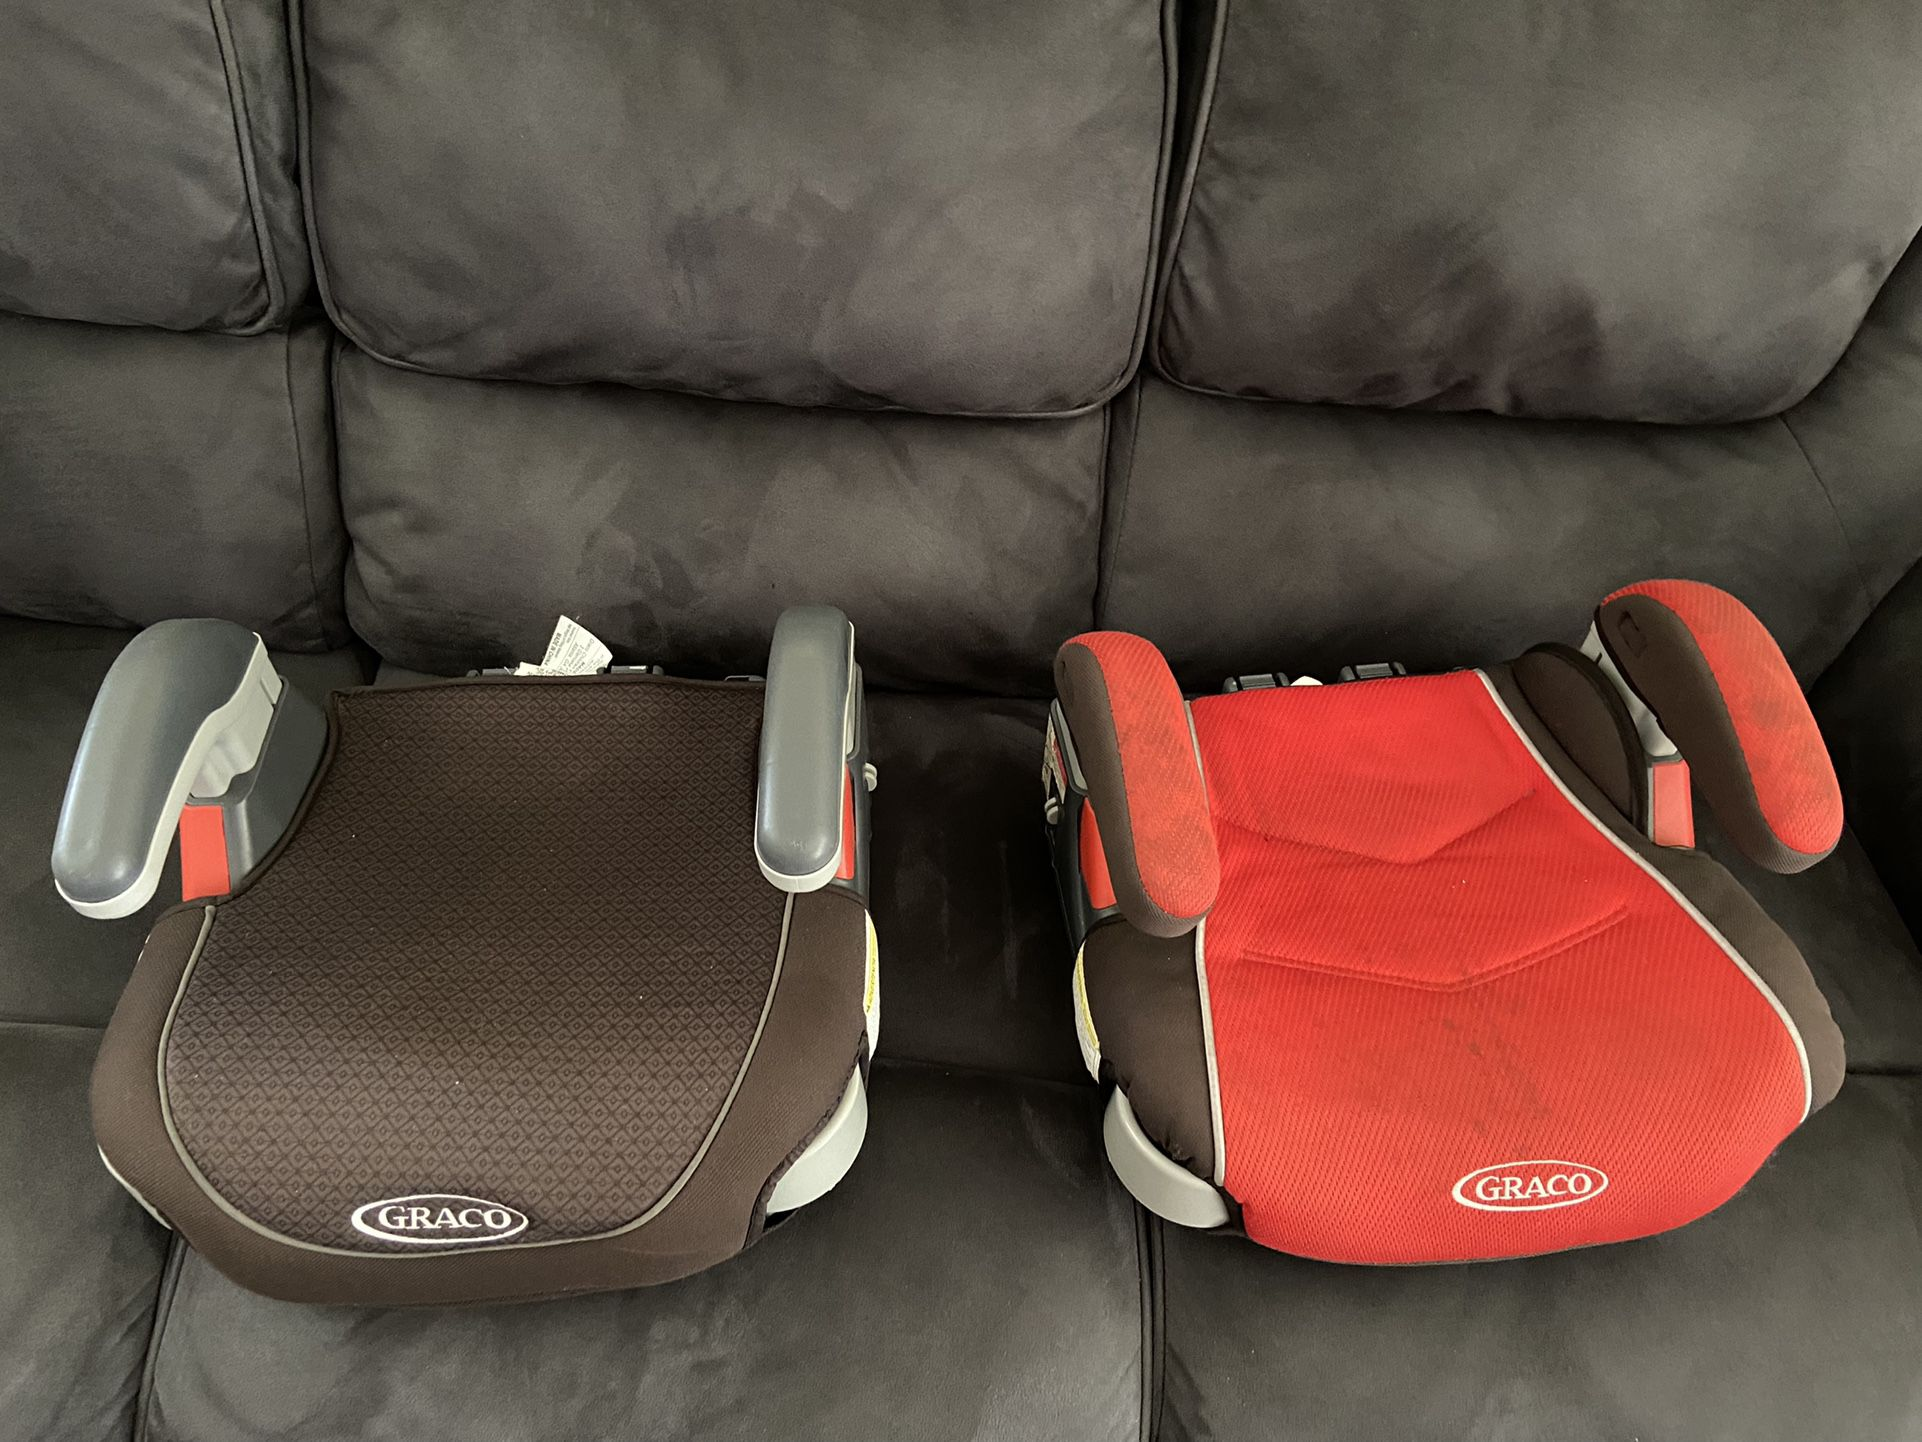 Kid's Booster Seats